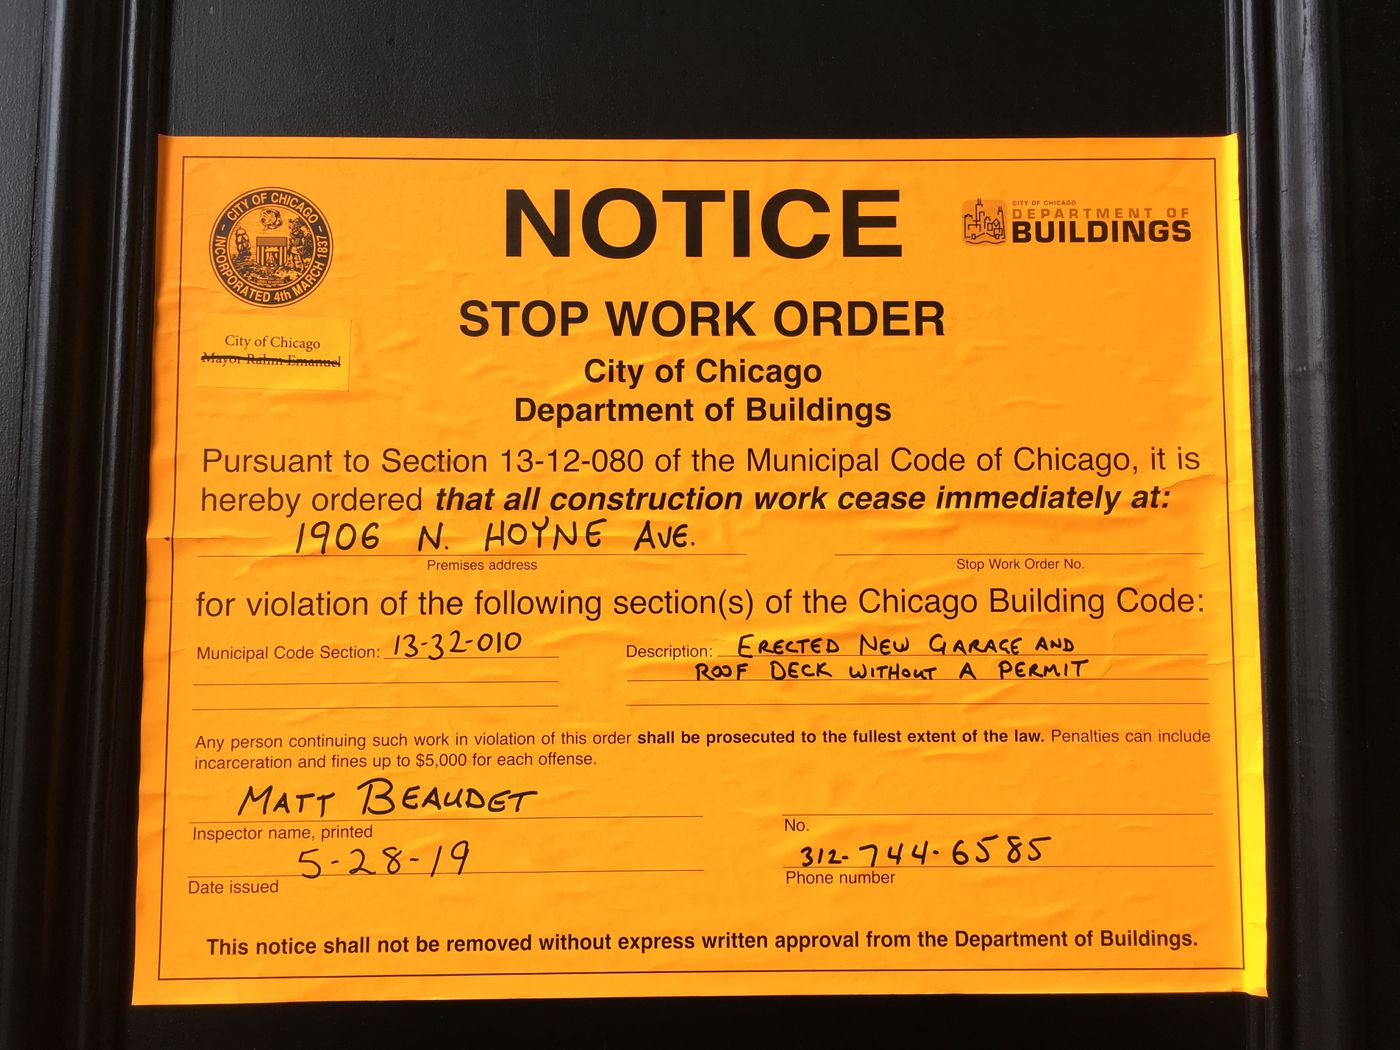 Windy City Rehab' hit with stop-work order - Chicago Sun-Times